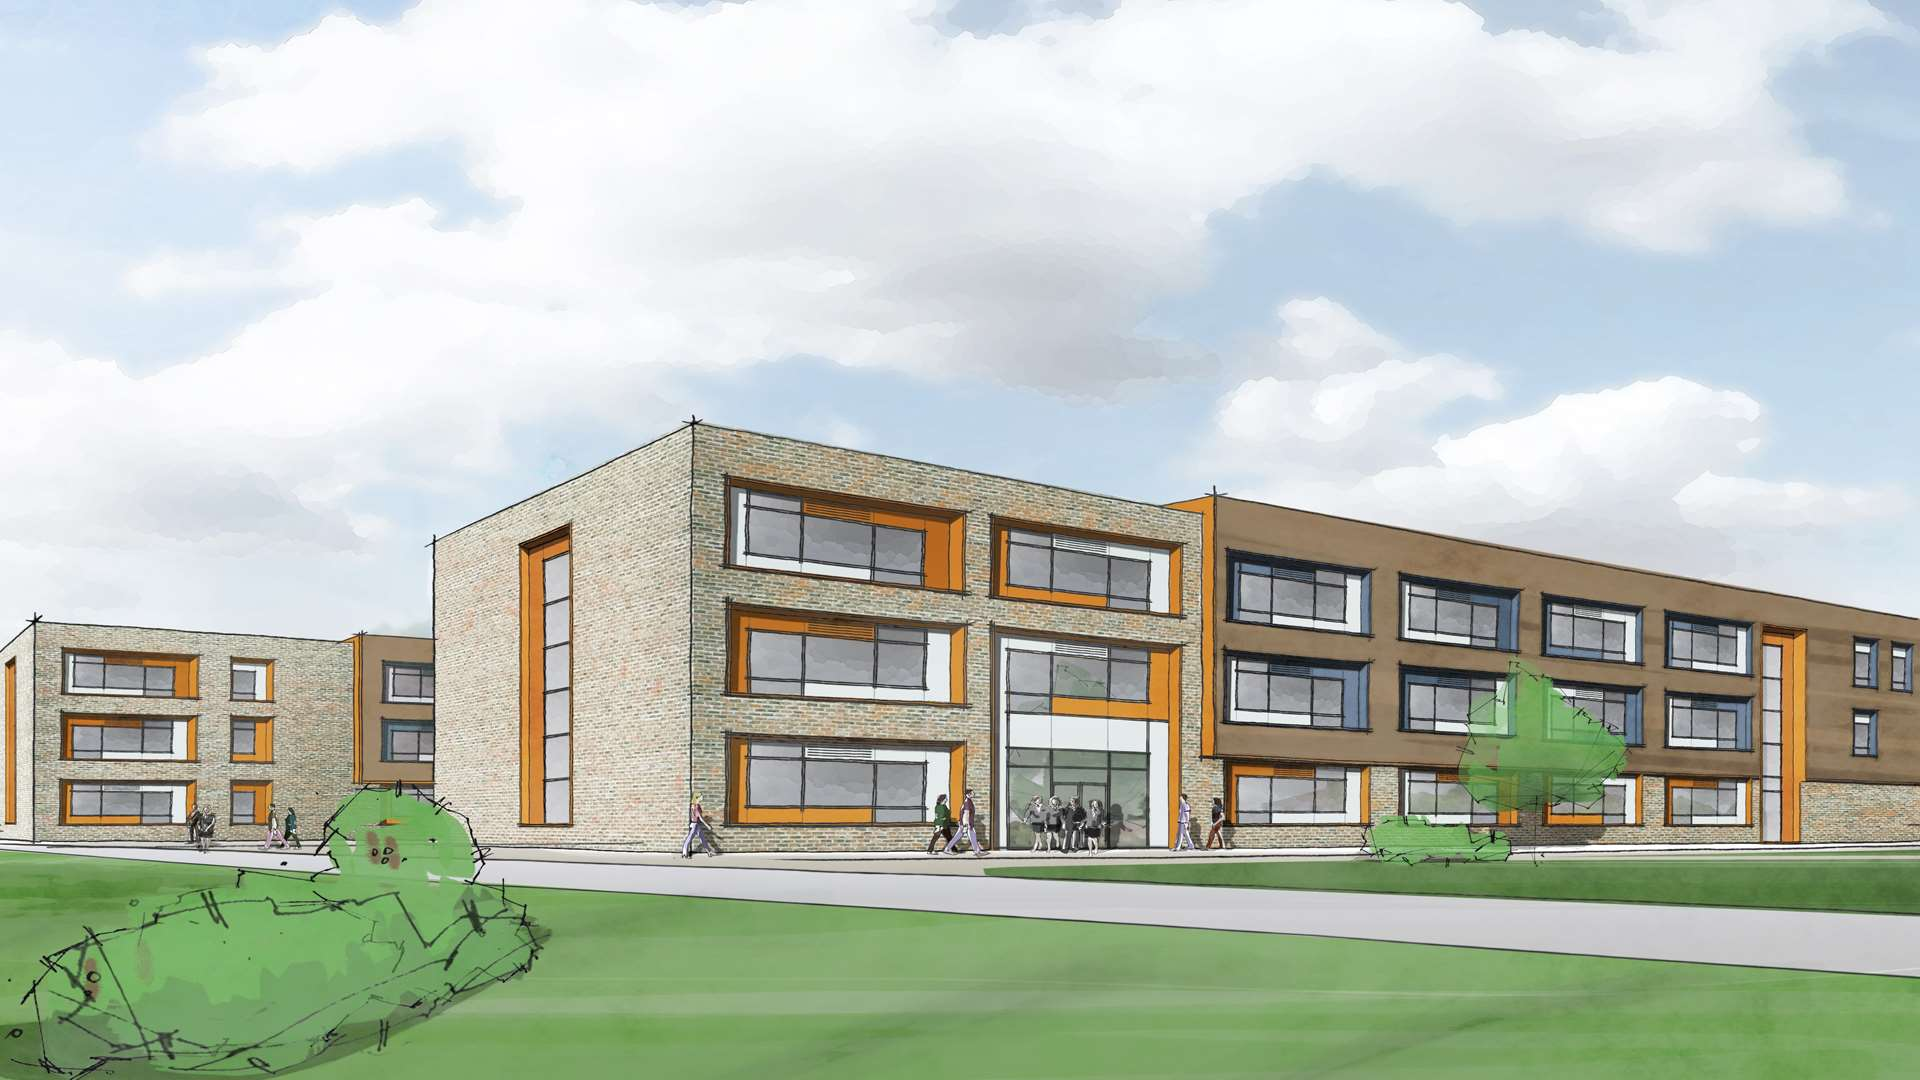 An artists' impression of the Maidstone School of Science and Technology